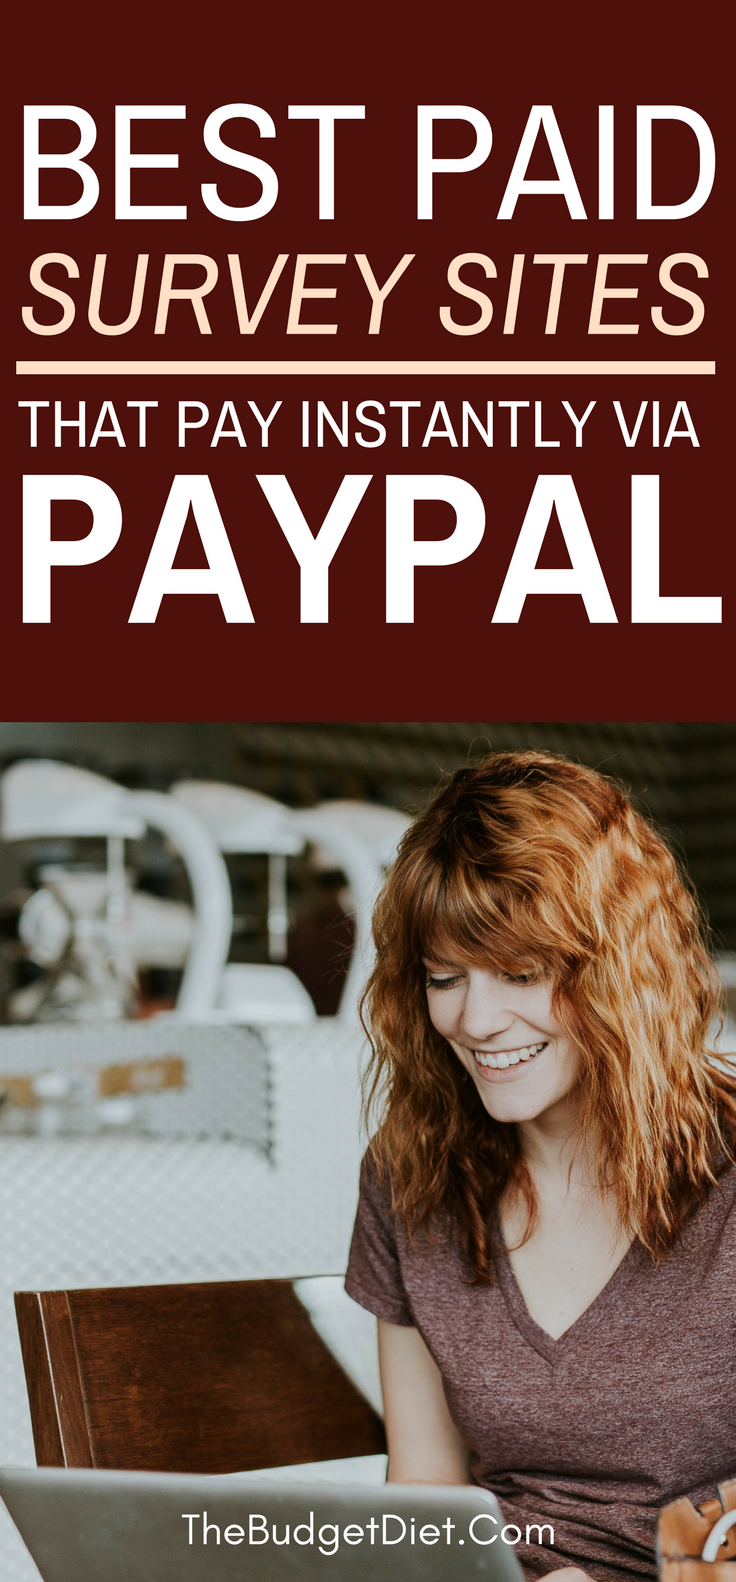 surveys that pay instantly to paypal best paid survey sites that pay instantly via paypal me 1857